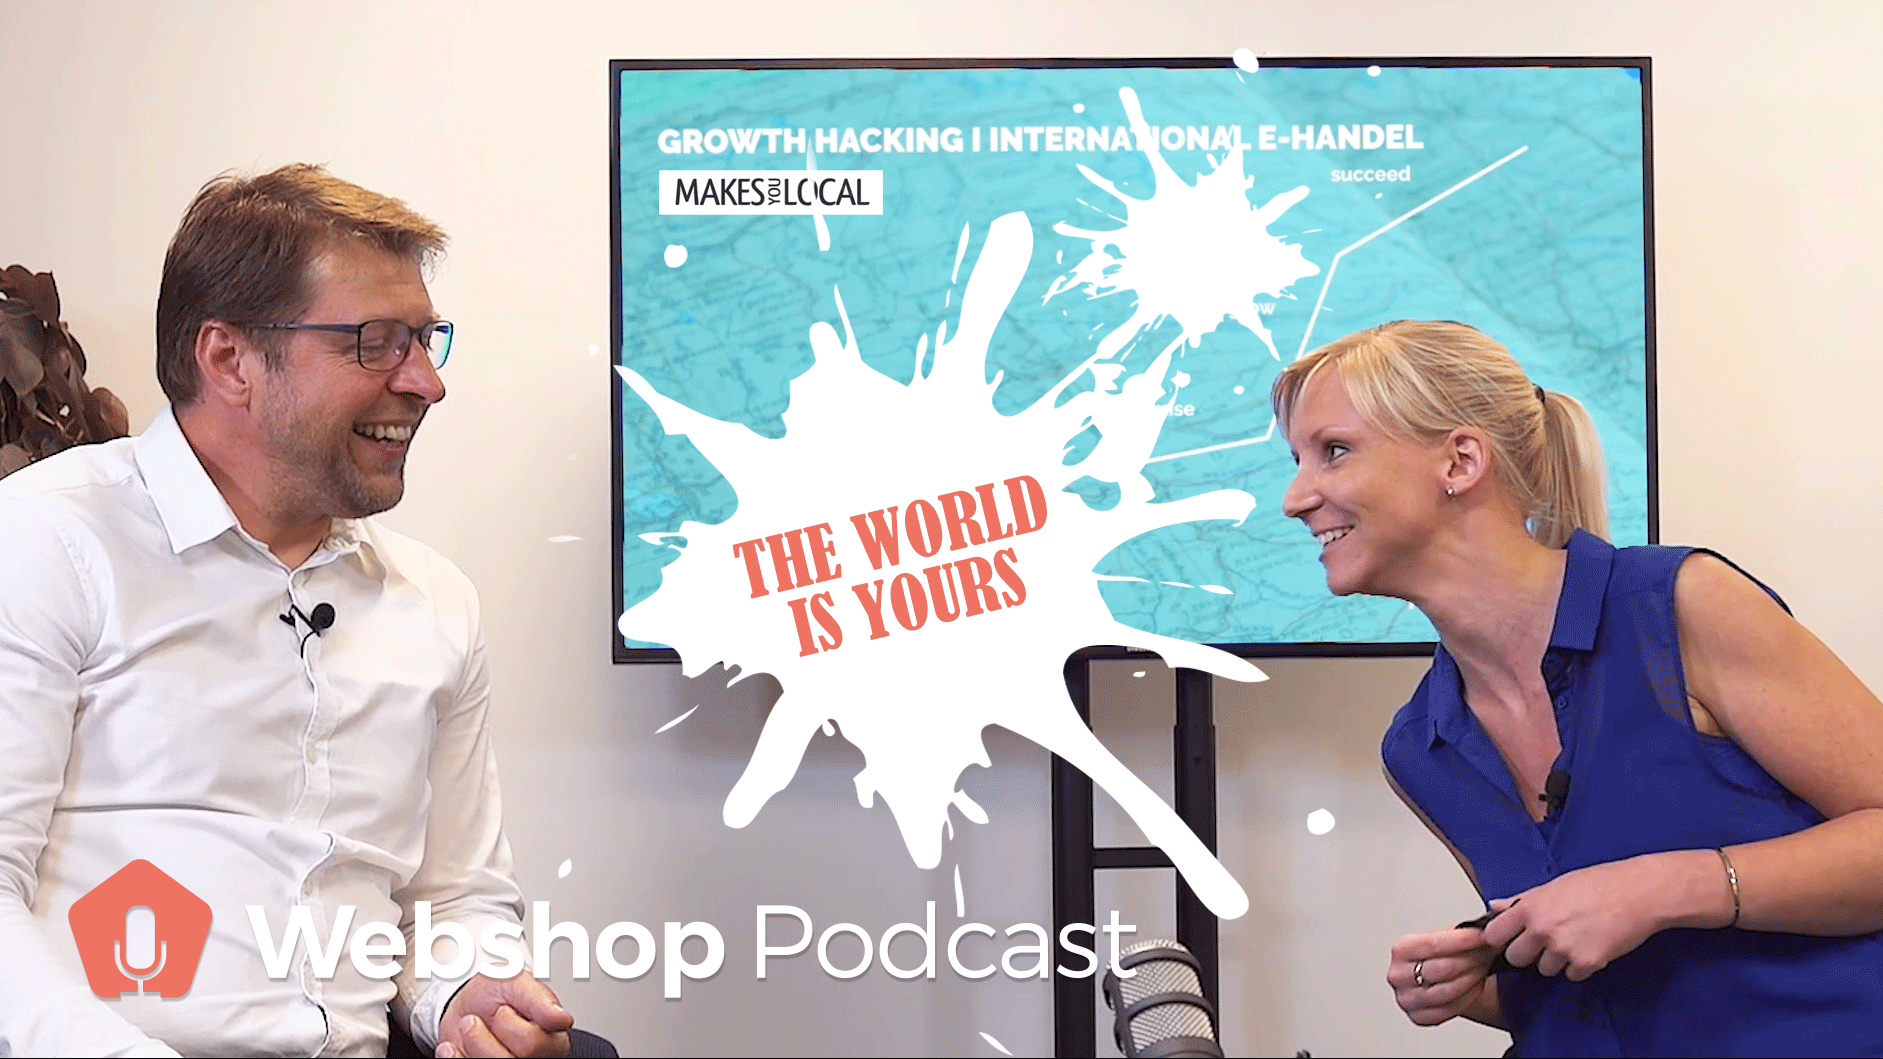 Eksport og e-handel - International webshop og growth hacking